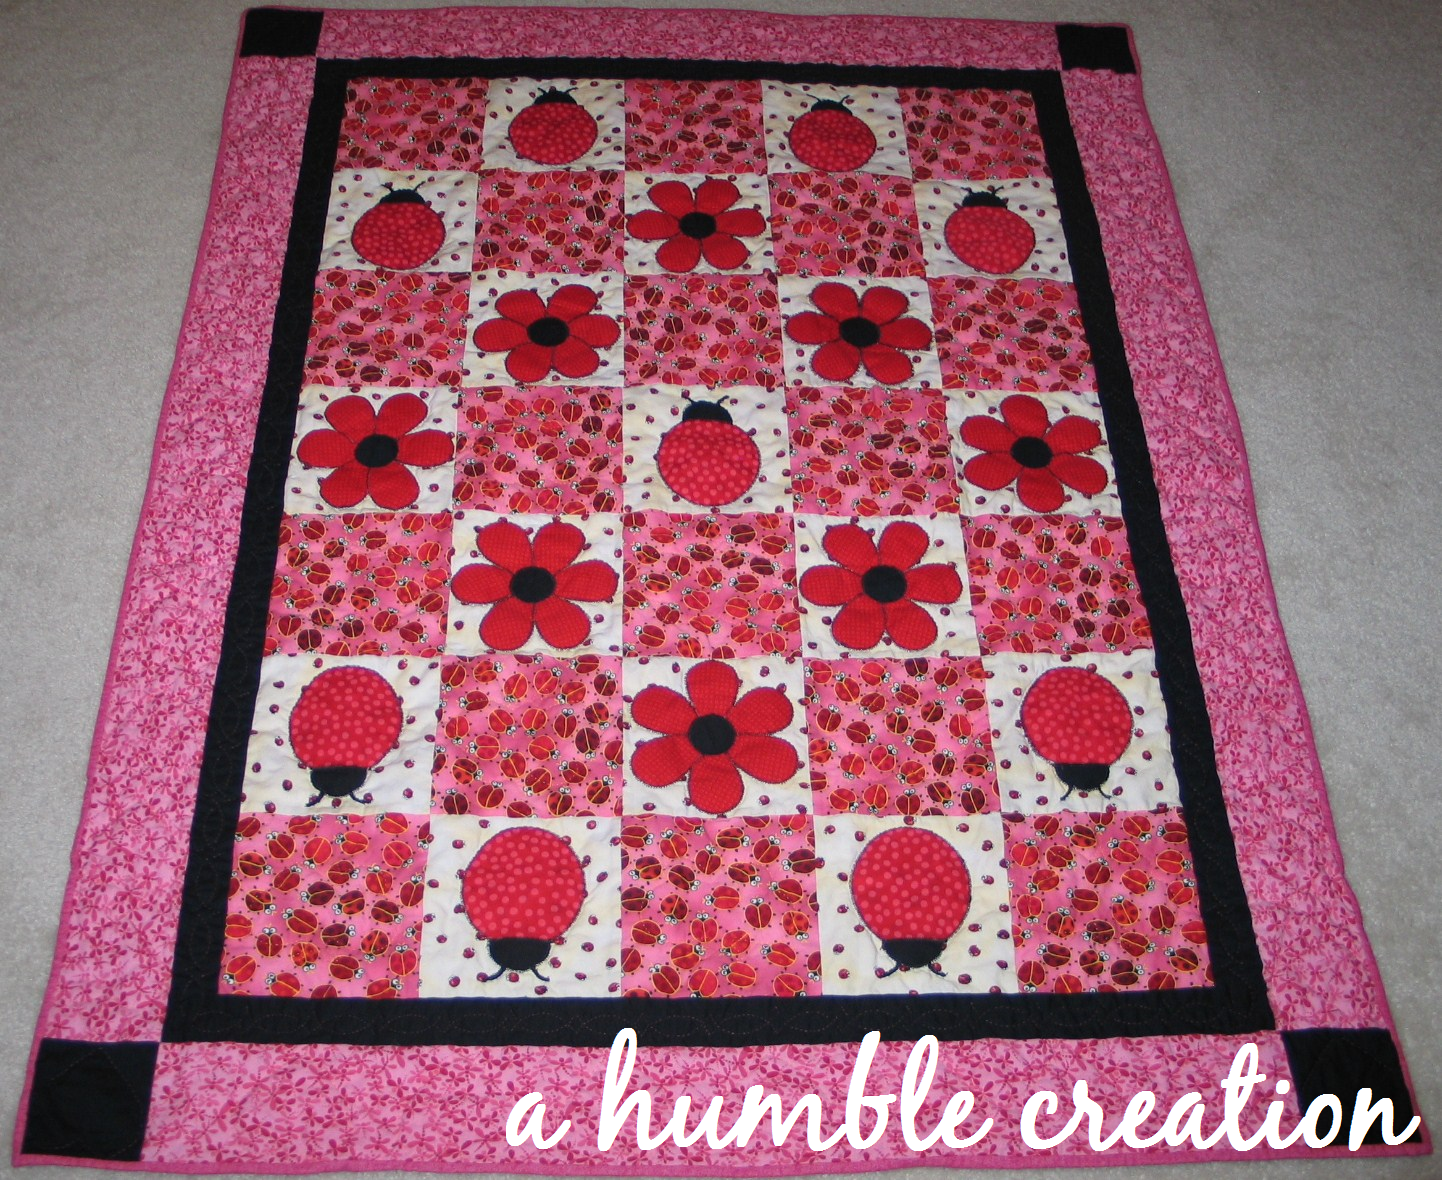 ladybug quilt patterns - Google Search | baby quilts | Pinterest ... : lady bug quilts - Adamdwight.com